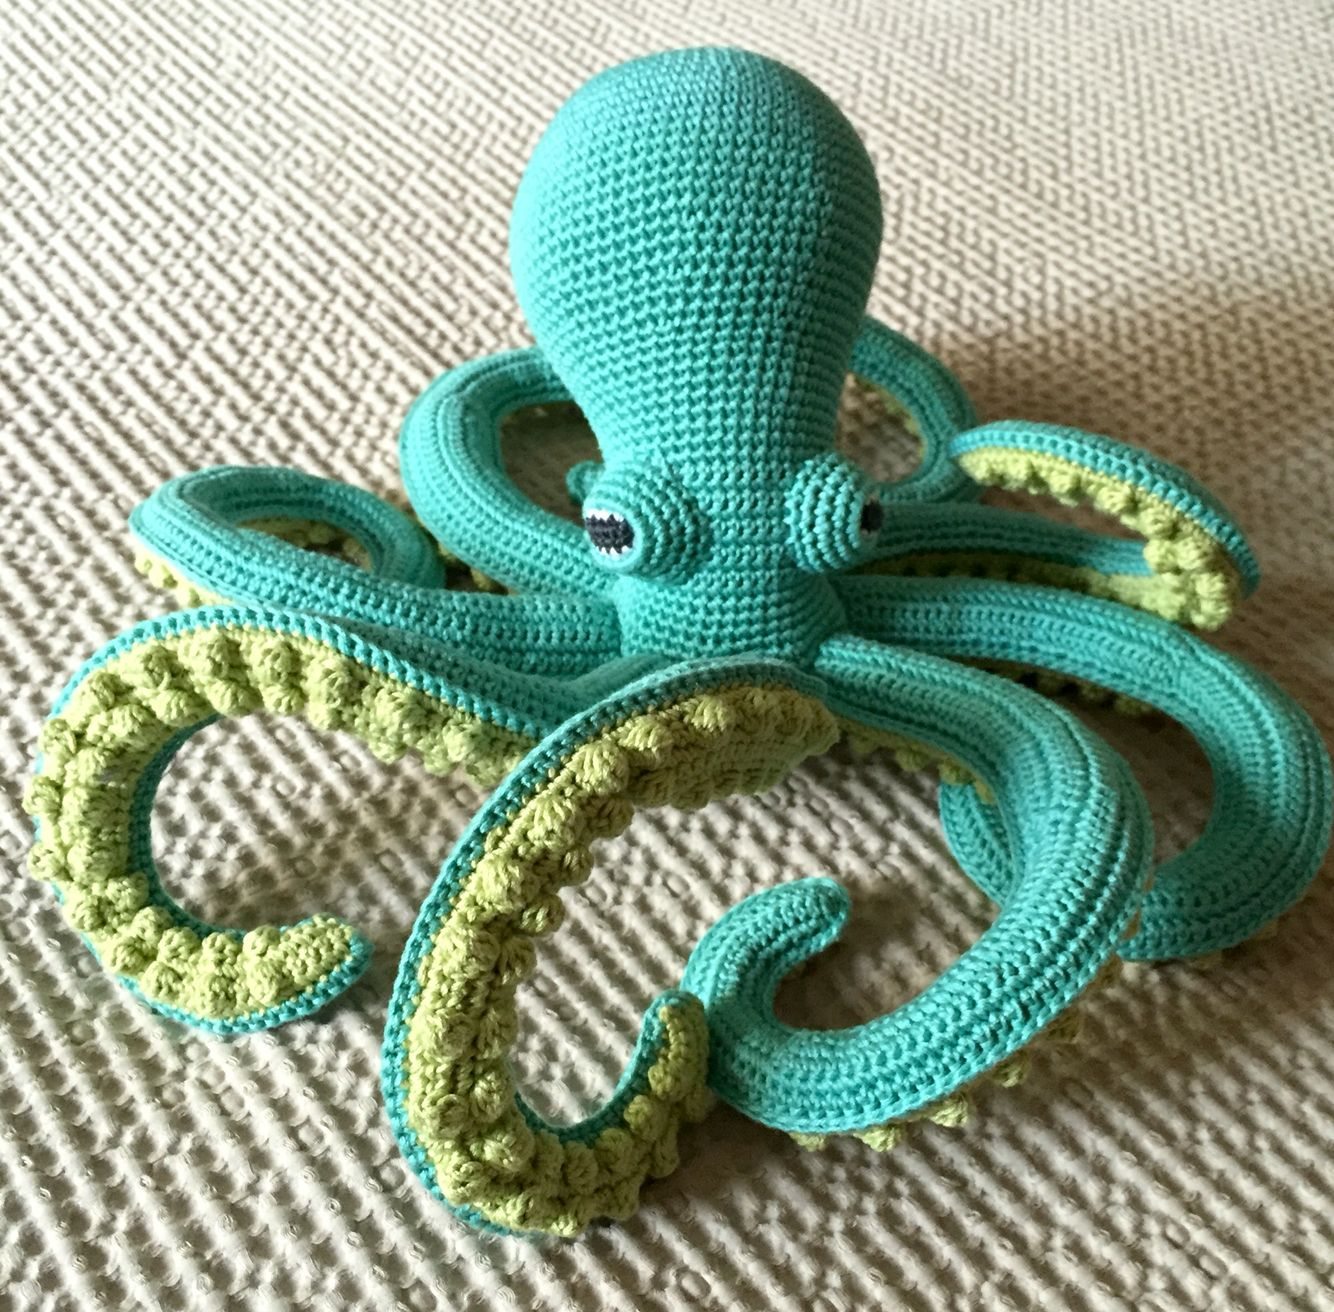 Octopus Pattern By Vanessa Mooncie Handmade By Micacrochet Octopus Crochet Pattern Crochet Octopus Octopus Crochet Pattern Free